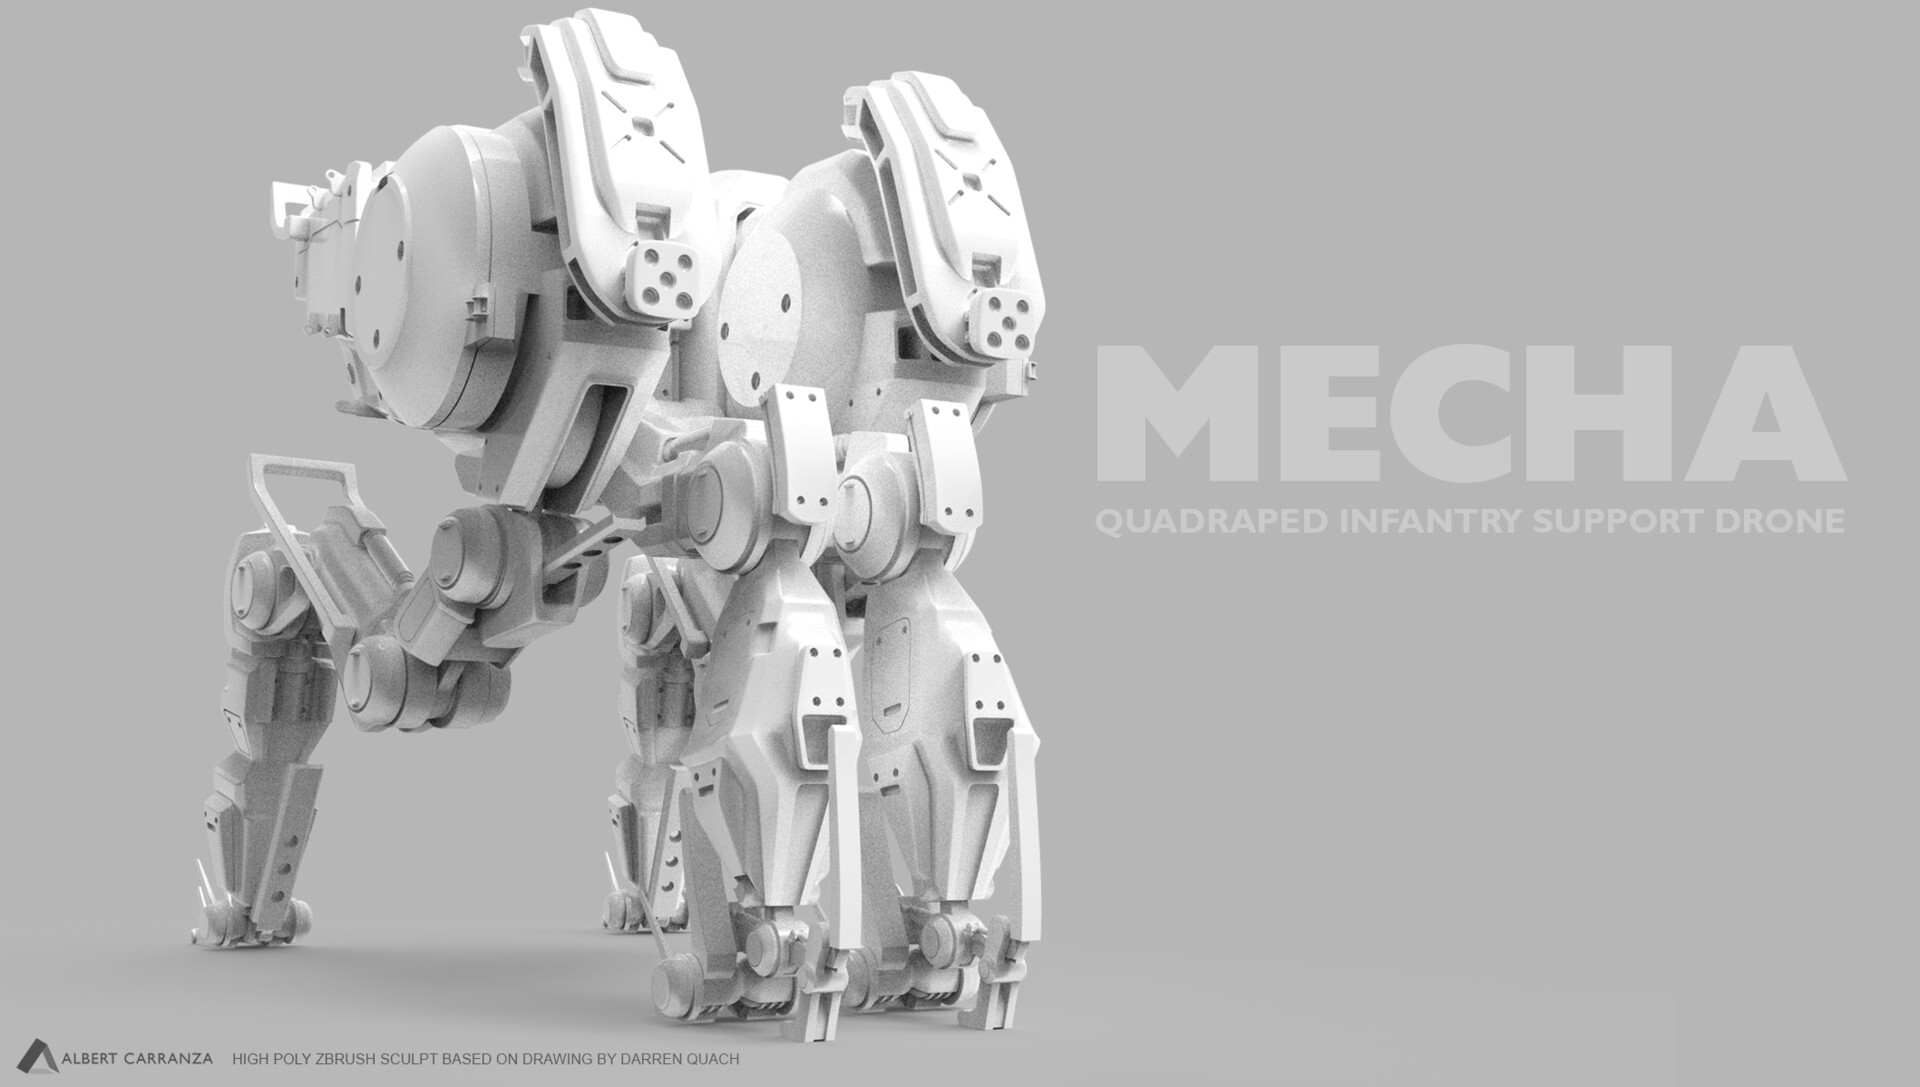 Mech based on a design from Darren Quach